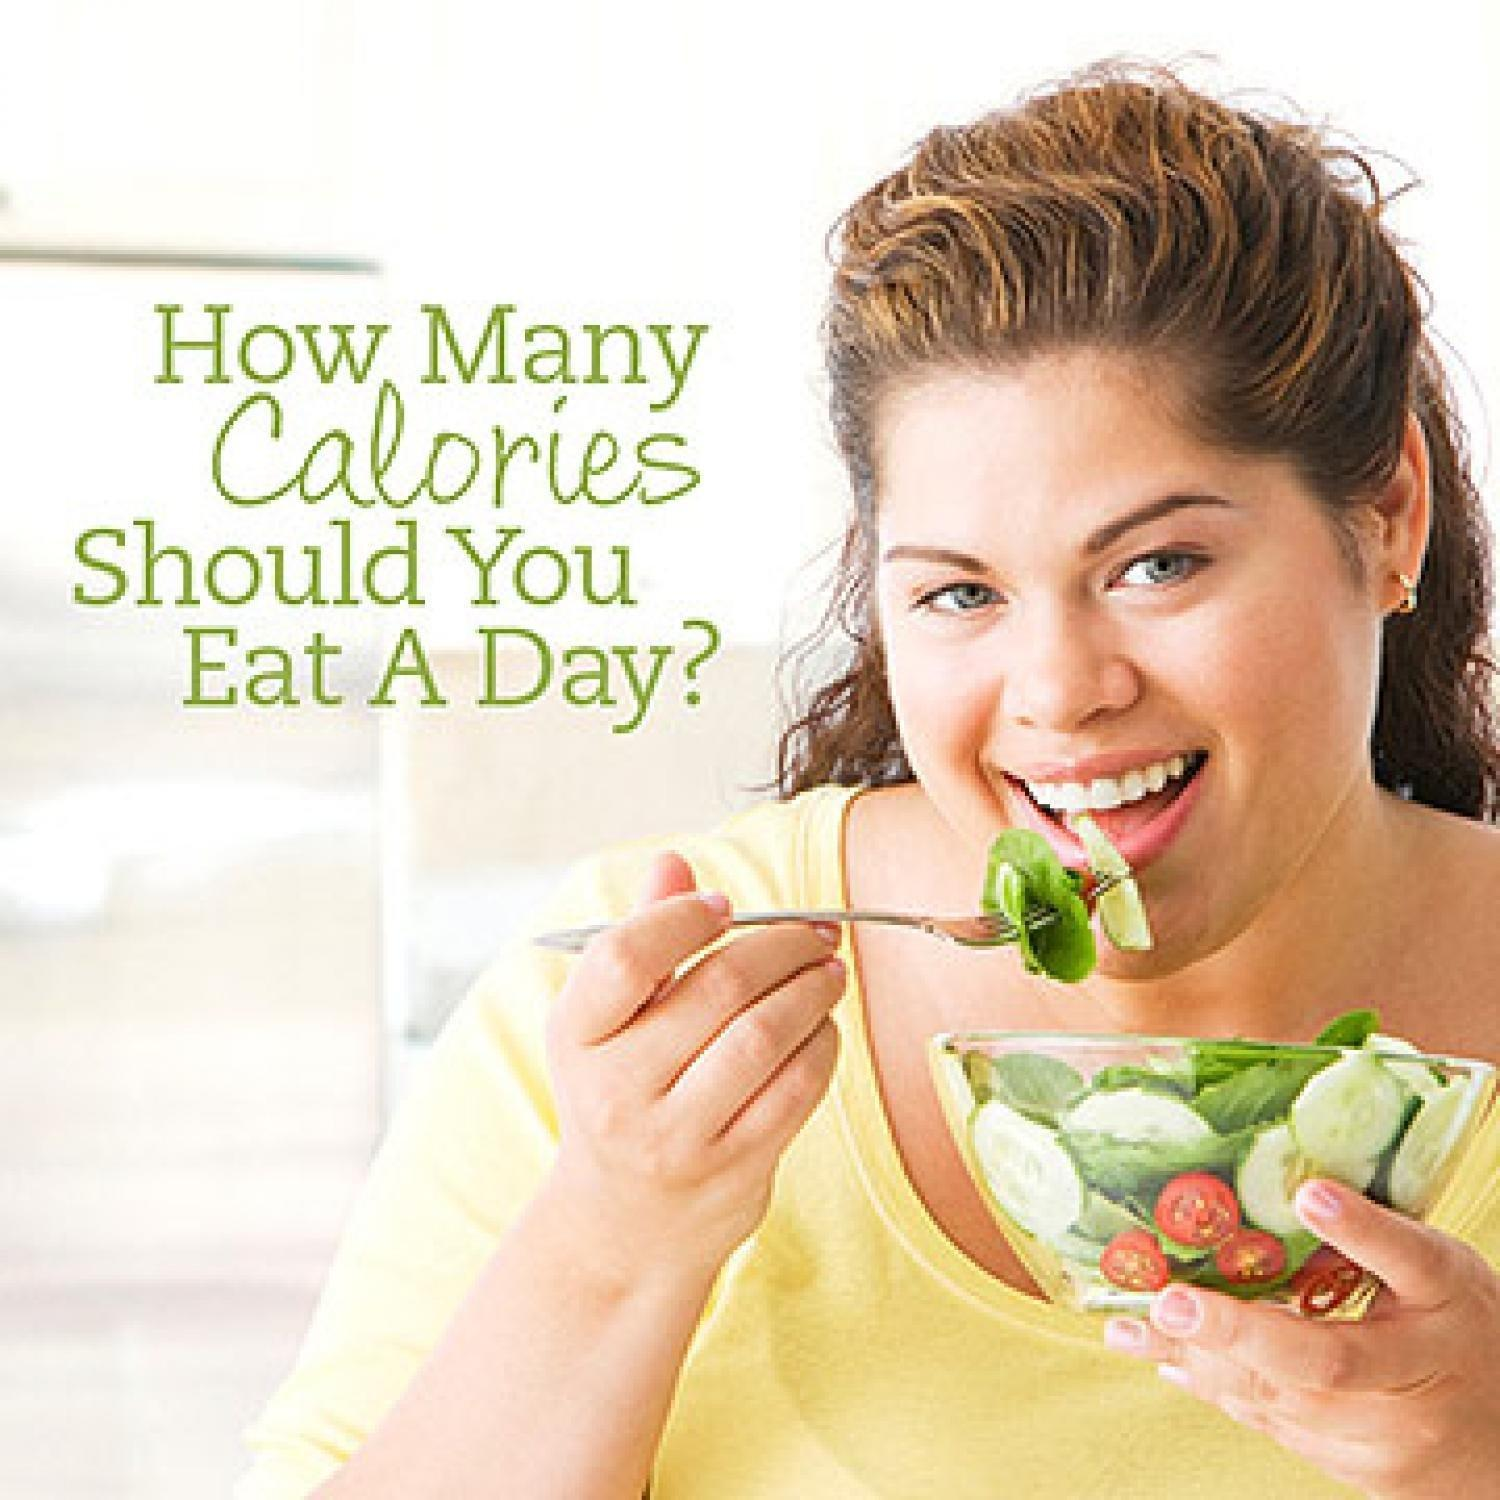 How Many Calories Should You Eat A Day?